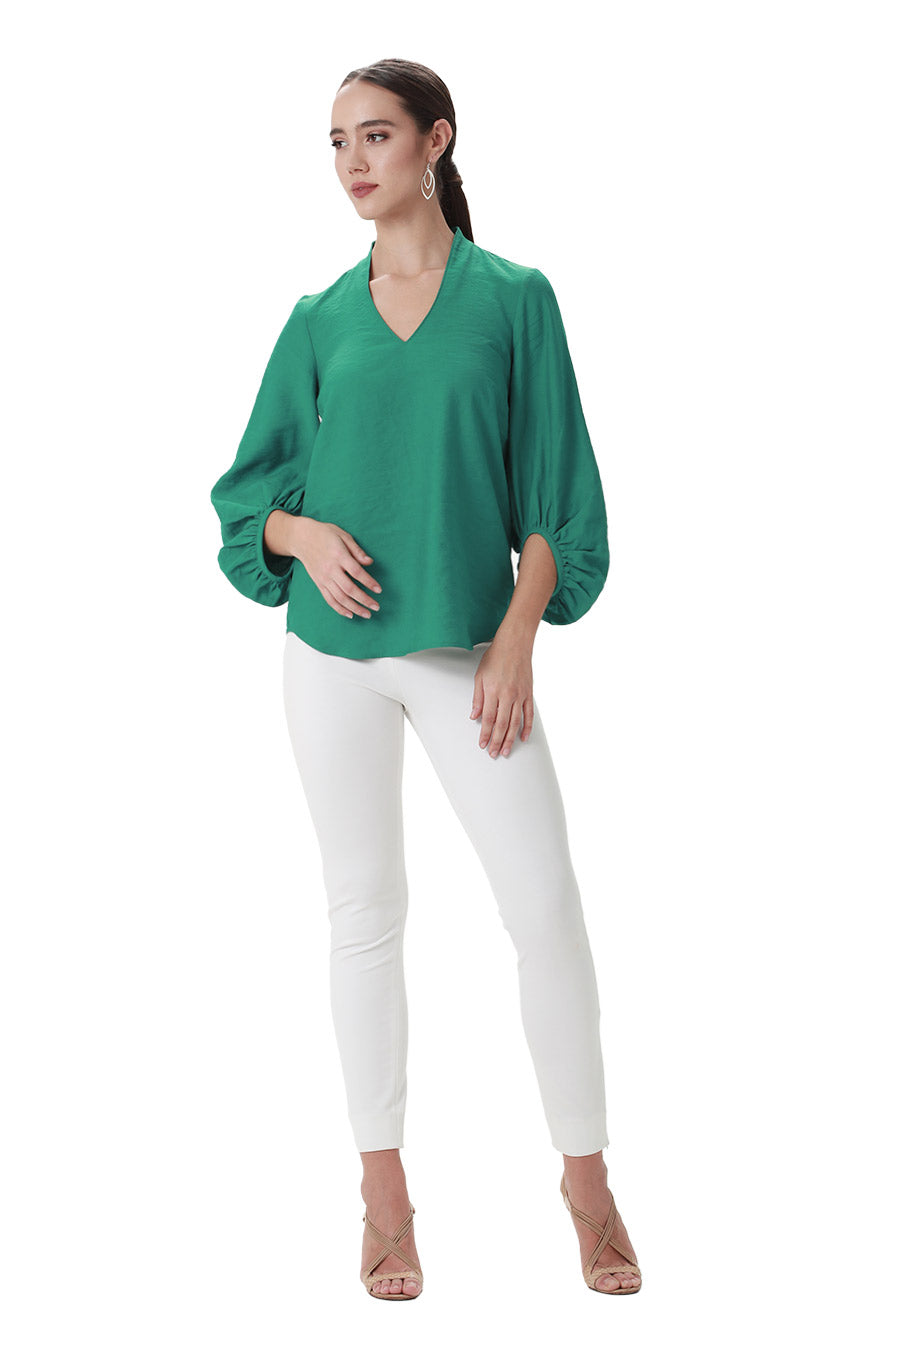 Green vneck top puff balloon sleeves